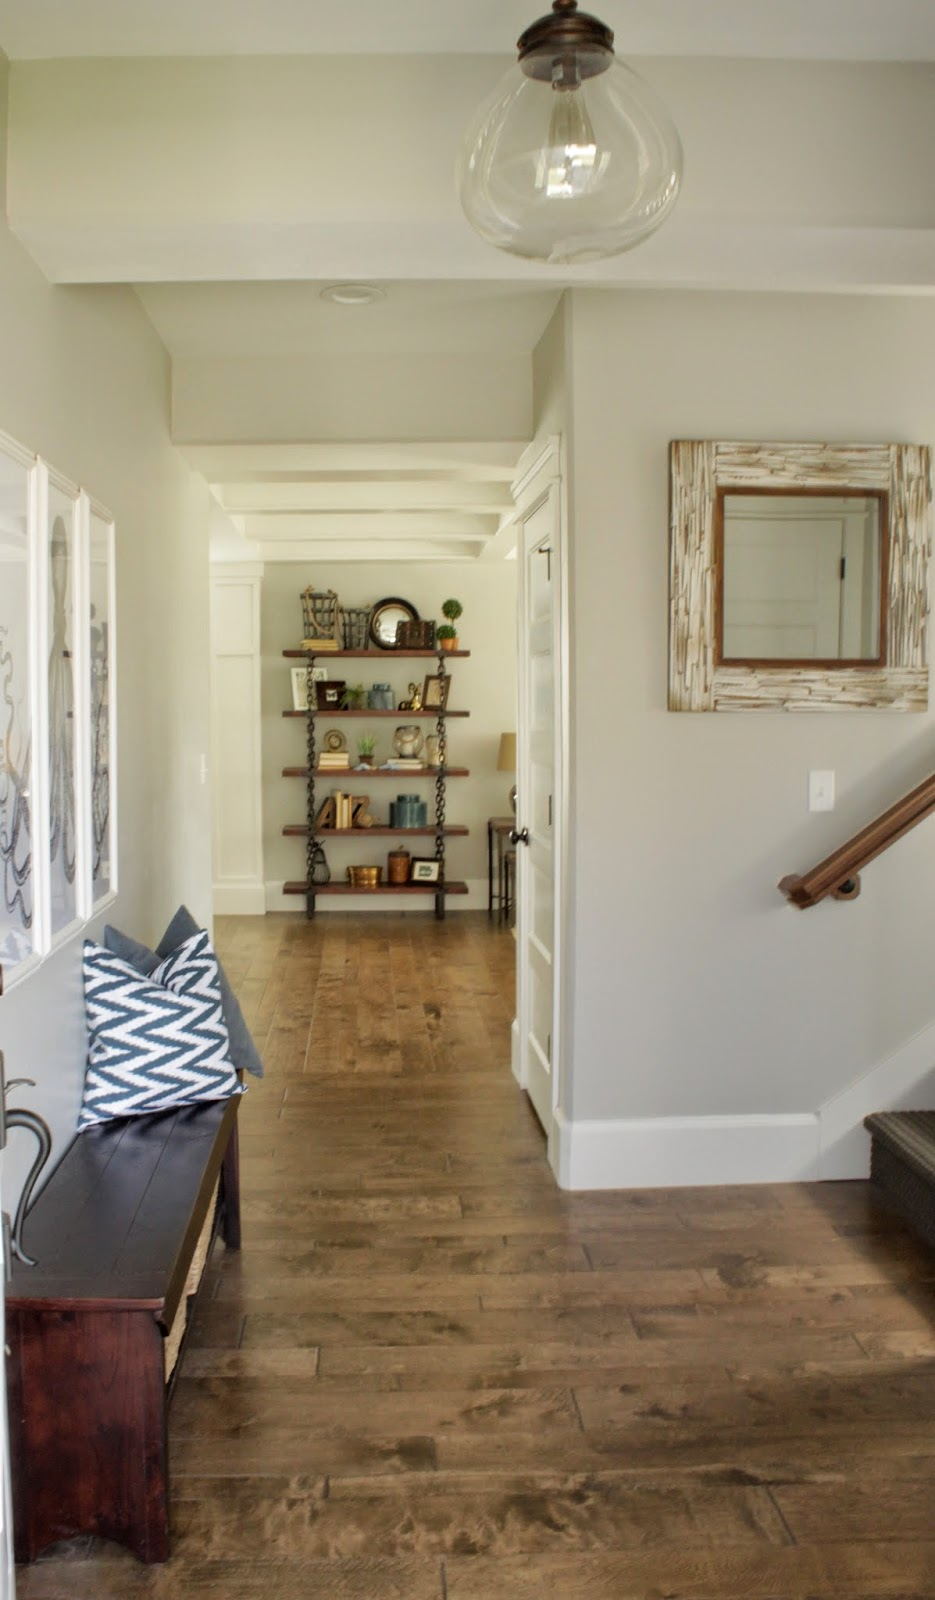 Numbered street designs idaho falls parade of homes 2014 - House color schemes interior ...